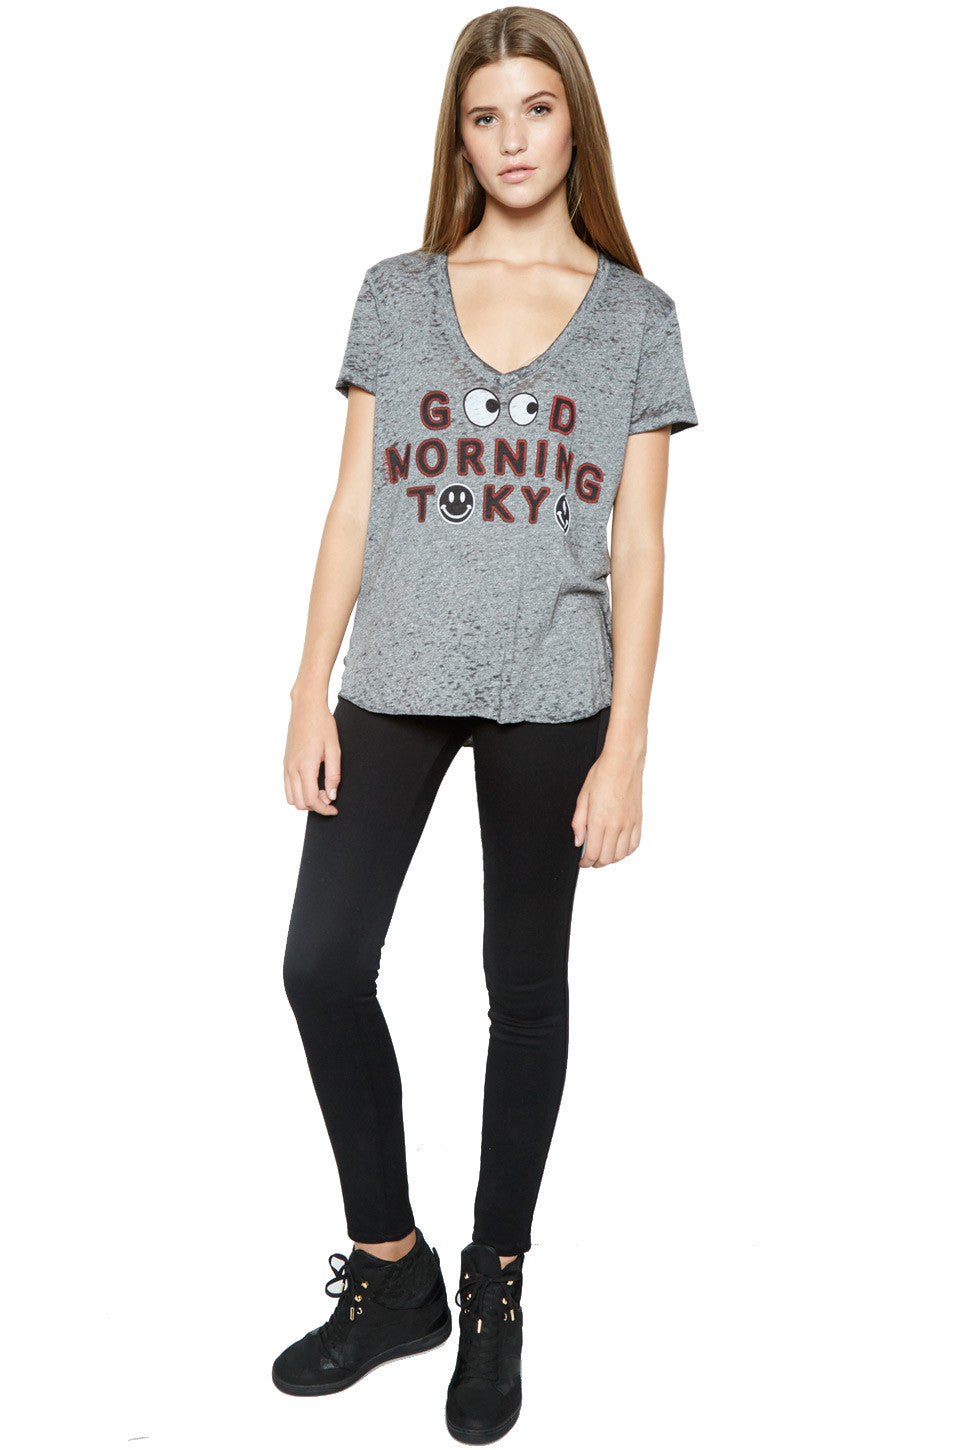 Emmalyn Good Morning Tokyo S/S V-Neck Scoop Raw Hem Tee - Lauren Moshi - 2